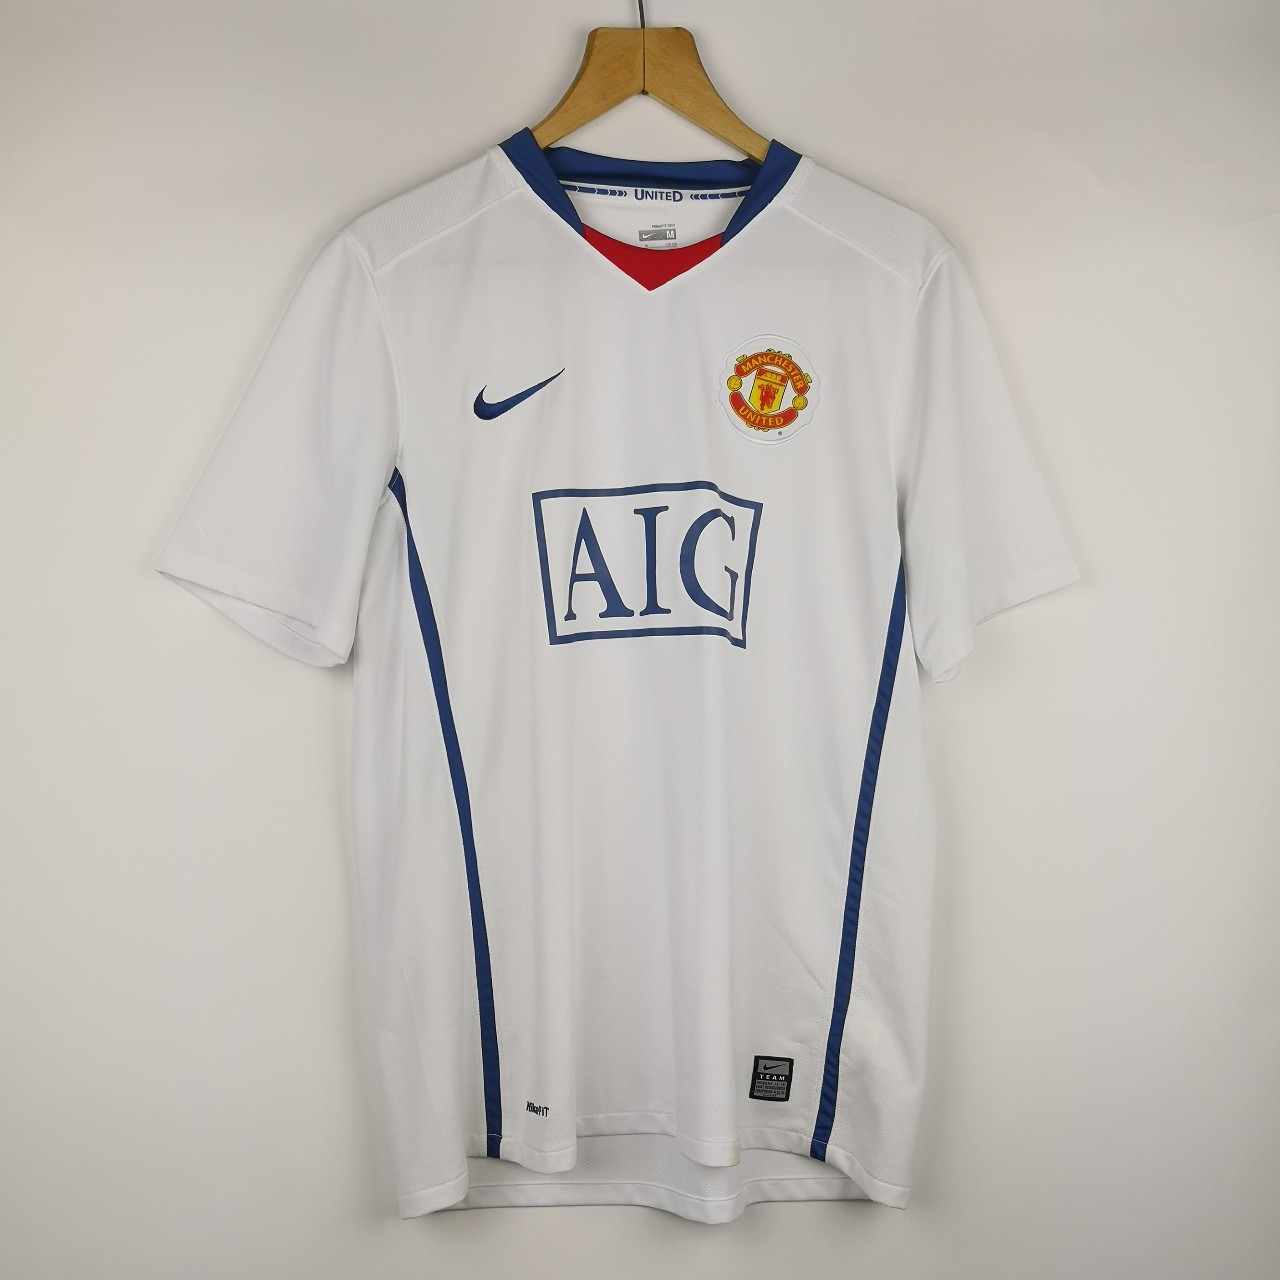 half off 5b88b ff08e NIKE X MANCHESTER UNITED FC 2008/09 AWAY SHIRT IN ...